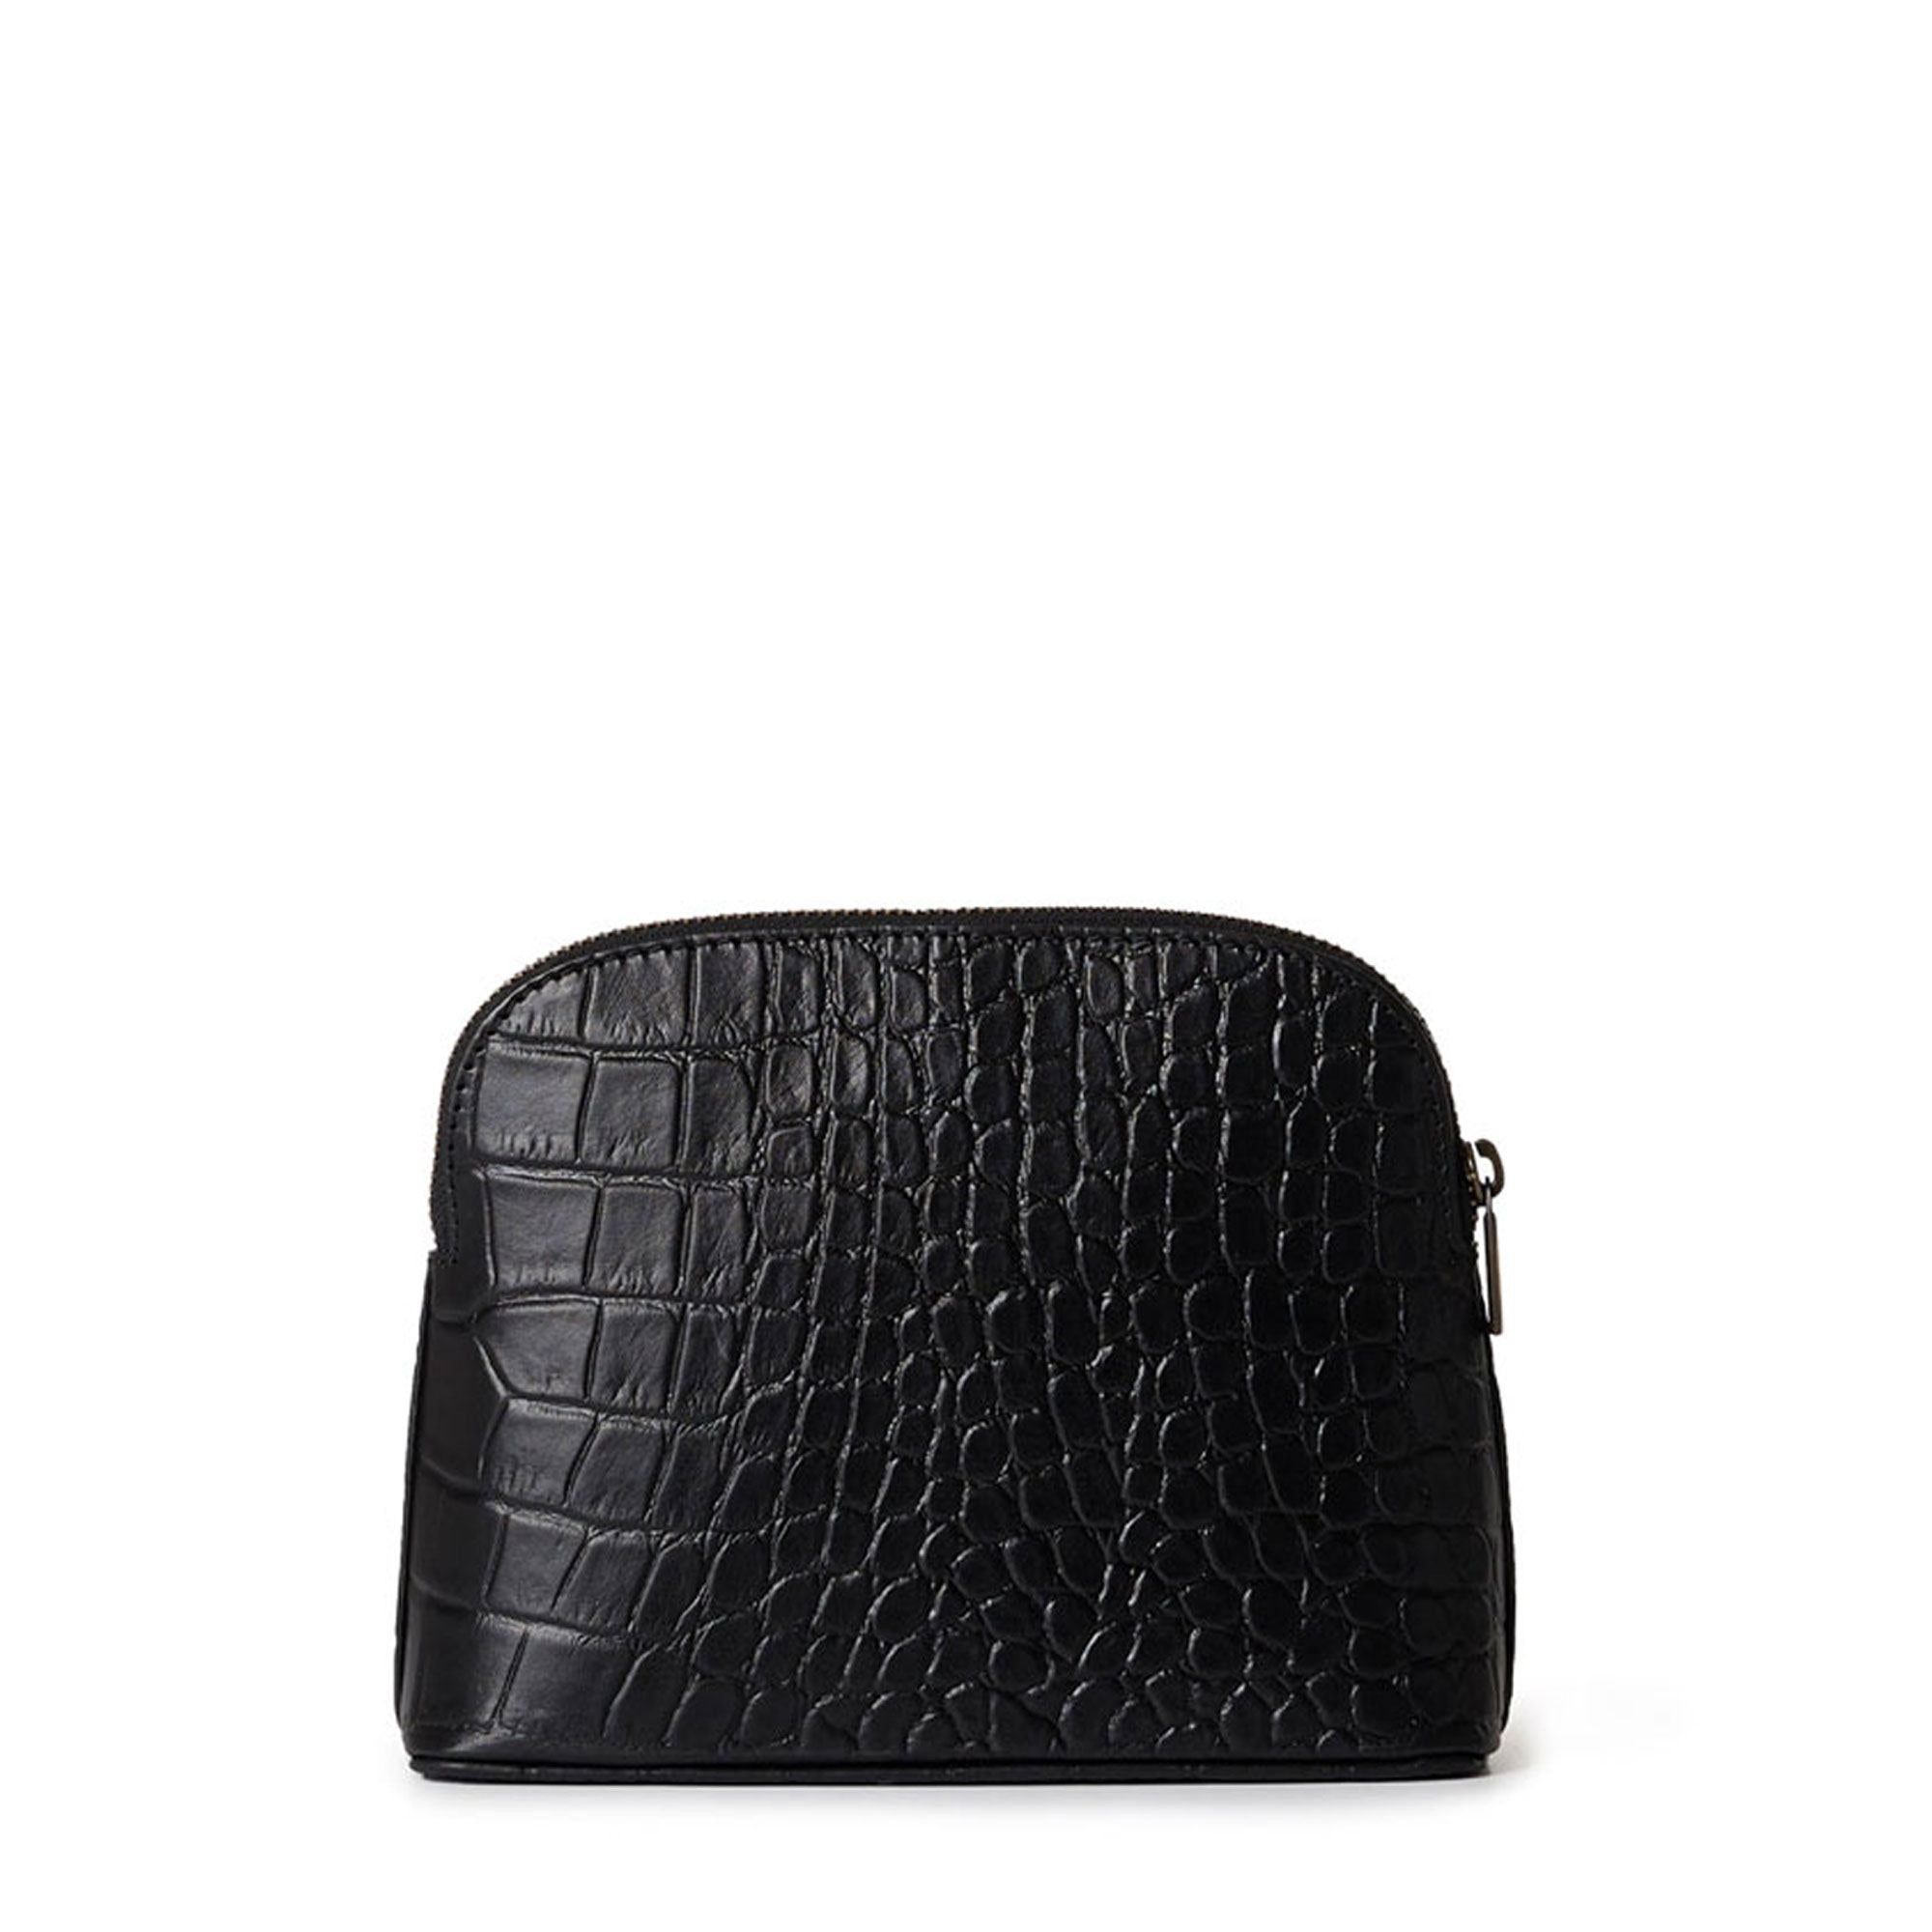 O My Bag cosmetic bag black/croco classic leather